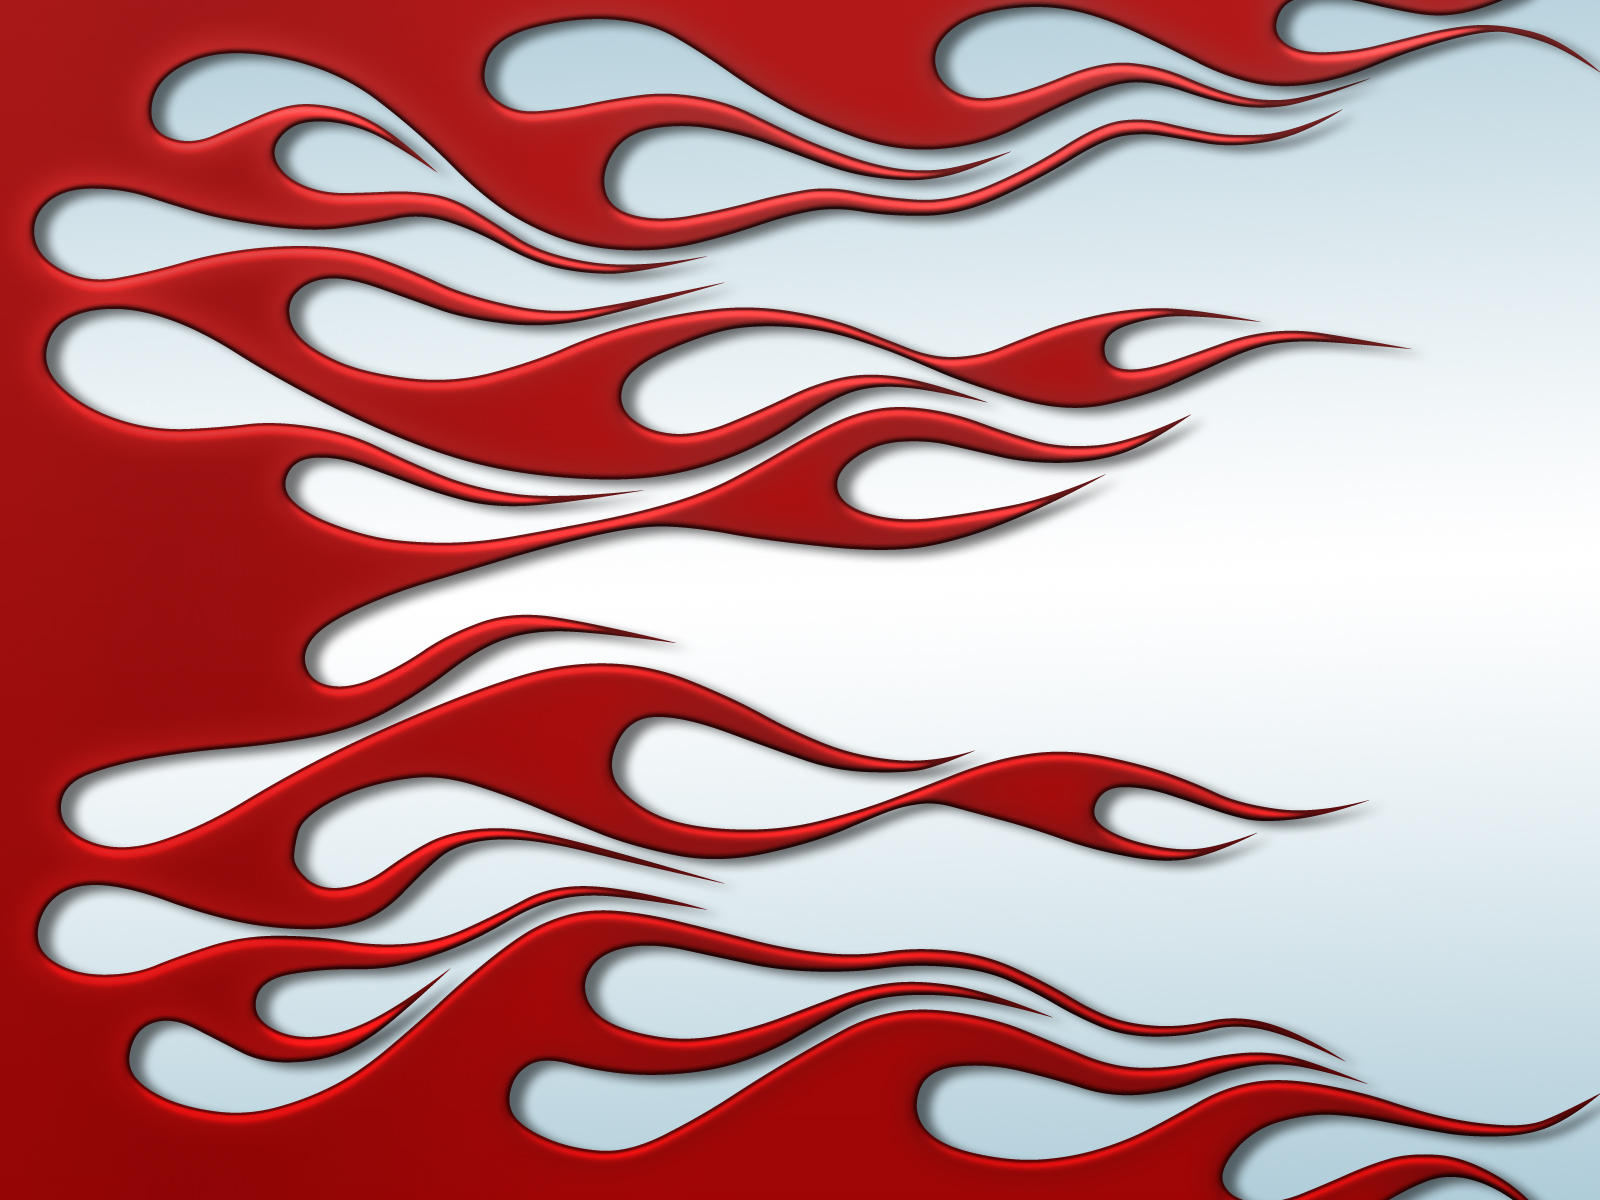 Flames - Red on white by jbensch